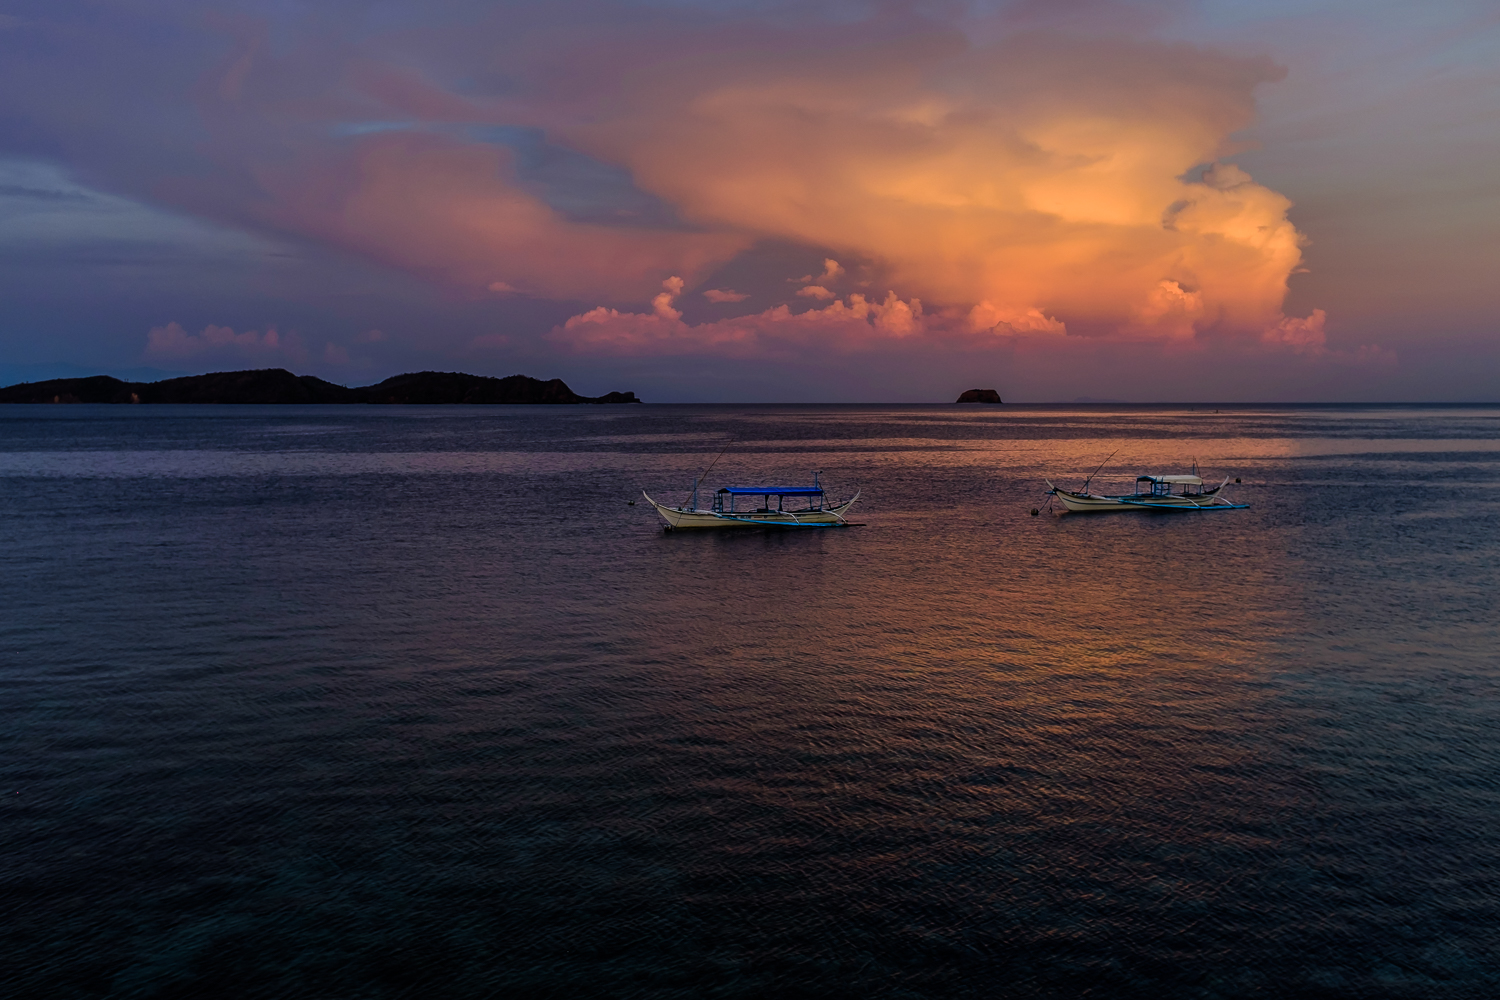 Sunrise Anilao; Looking out to Caban and Sombrero Islands